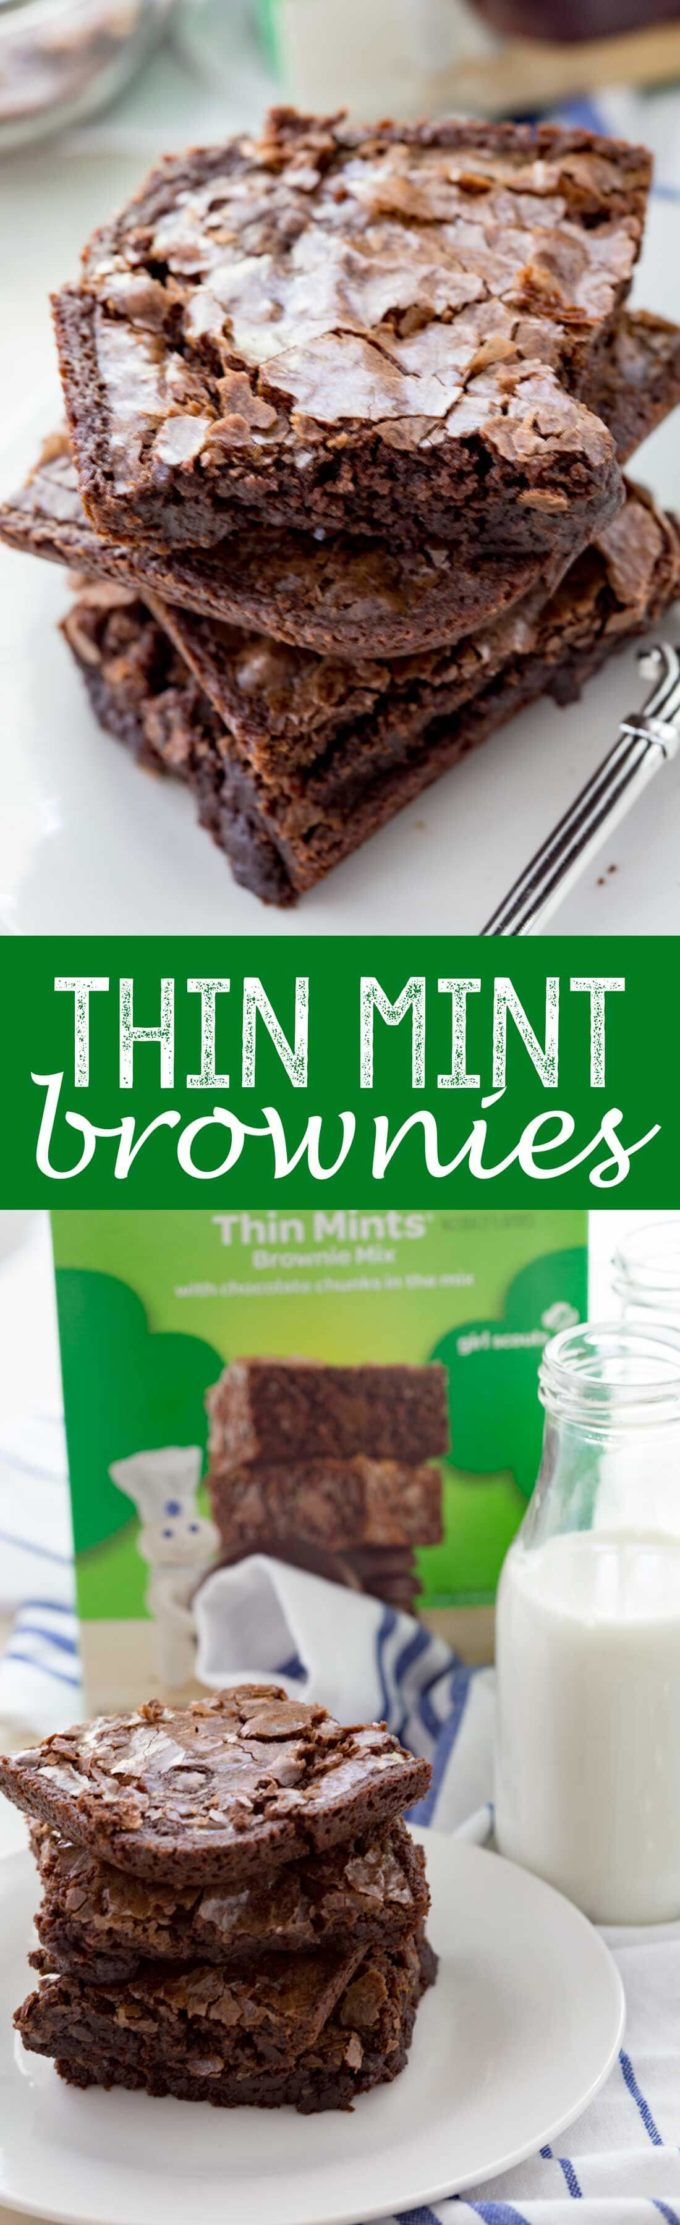 THin MInt Brownies are Girl Scout Cookie inspired brownies your whole family will love